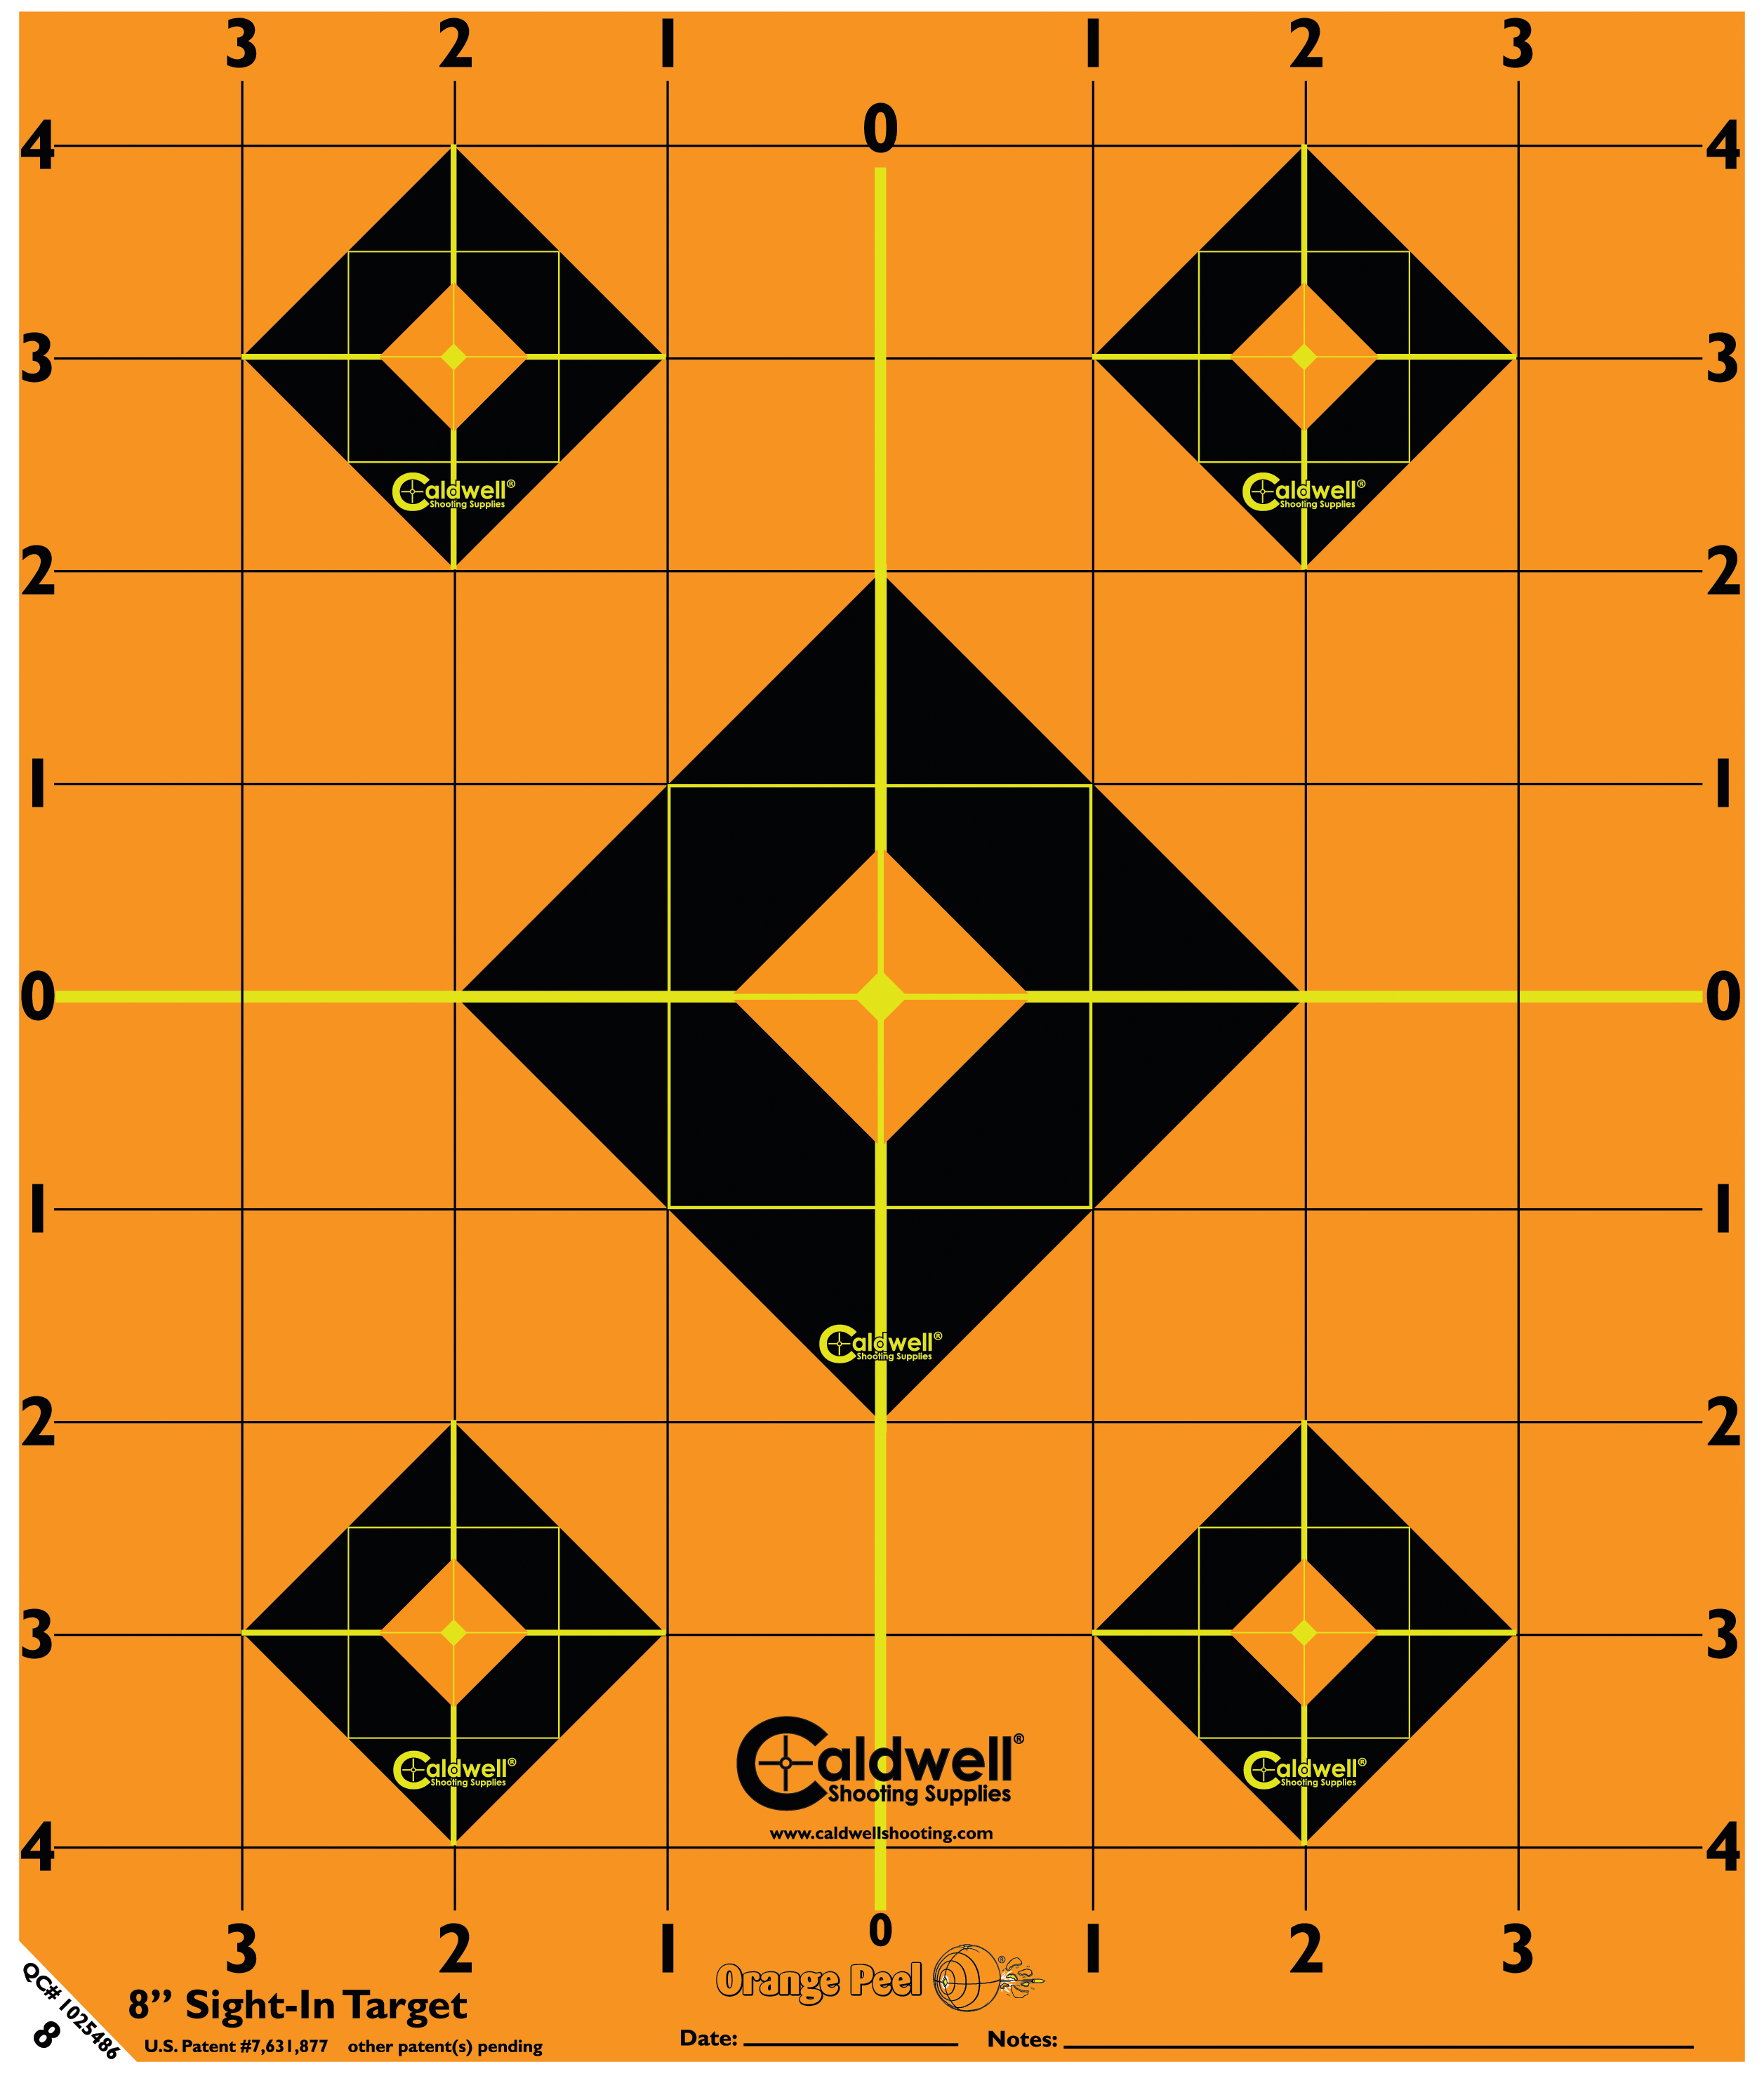 Caldwell 522-357 Orange Peel Targets Sight-In 8